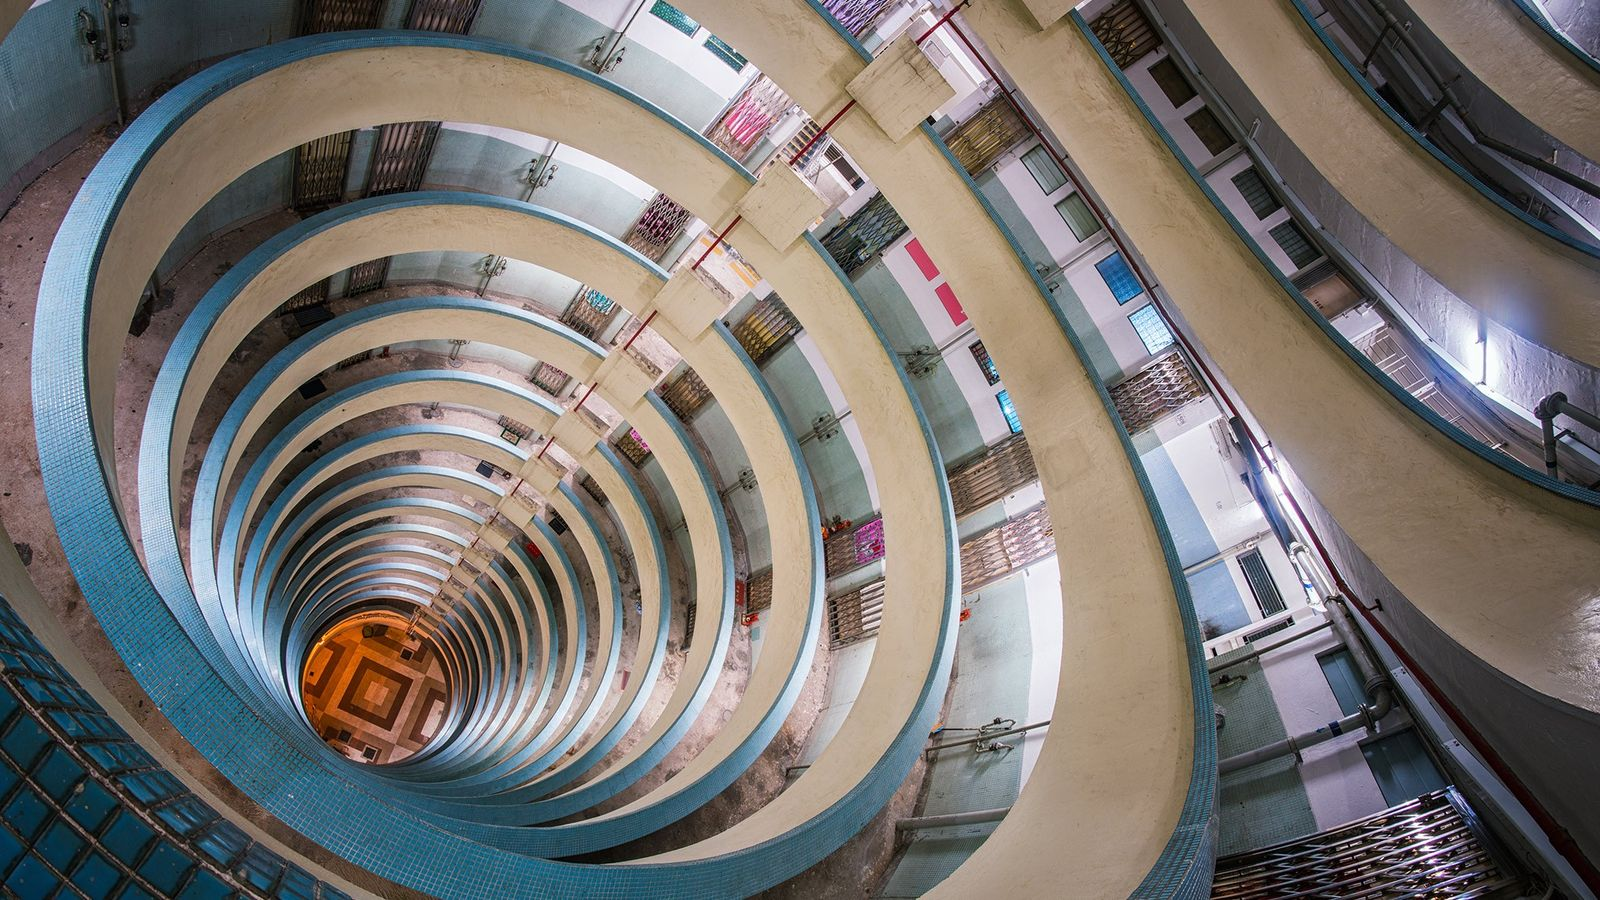 Standing on a middle floor of an old Tube apartment complex in Hong Kong. It's interesting ...